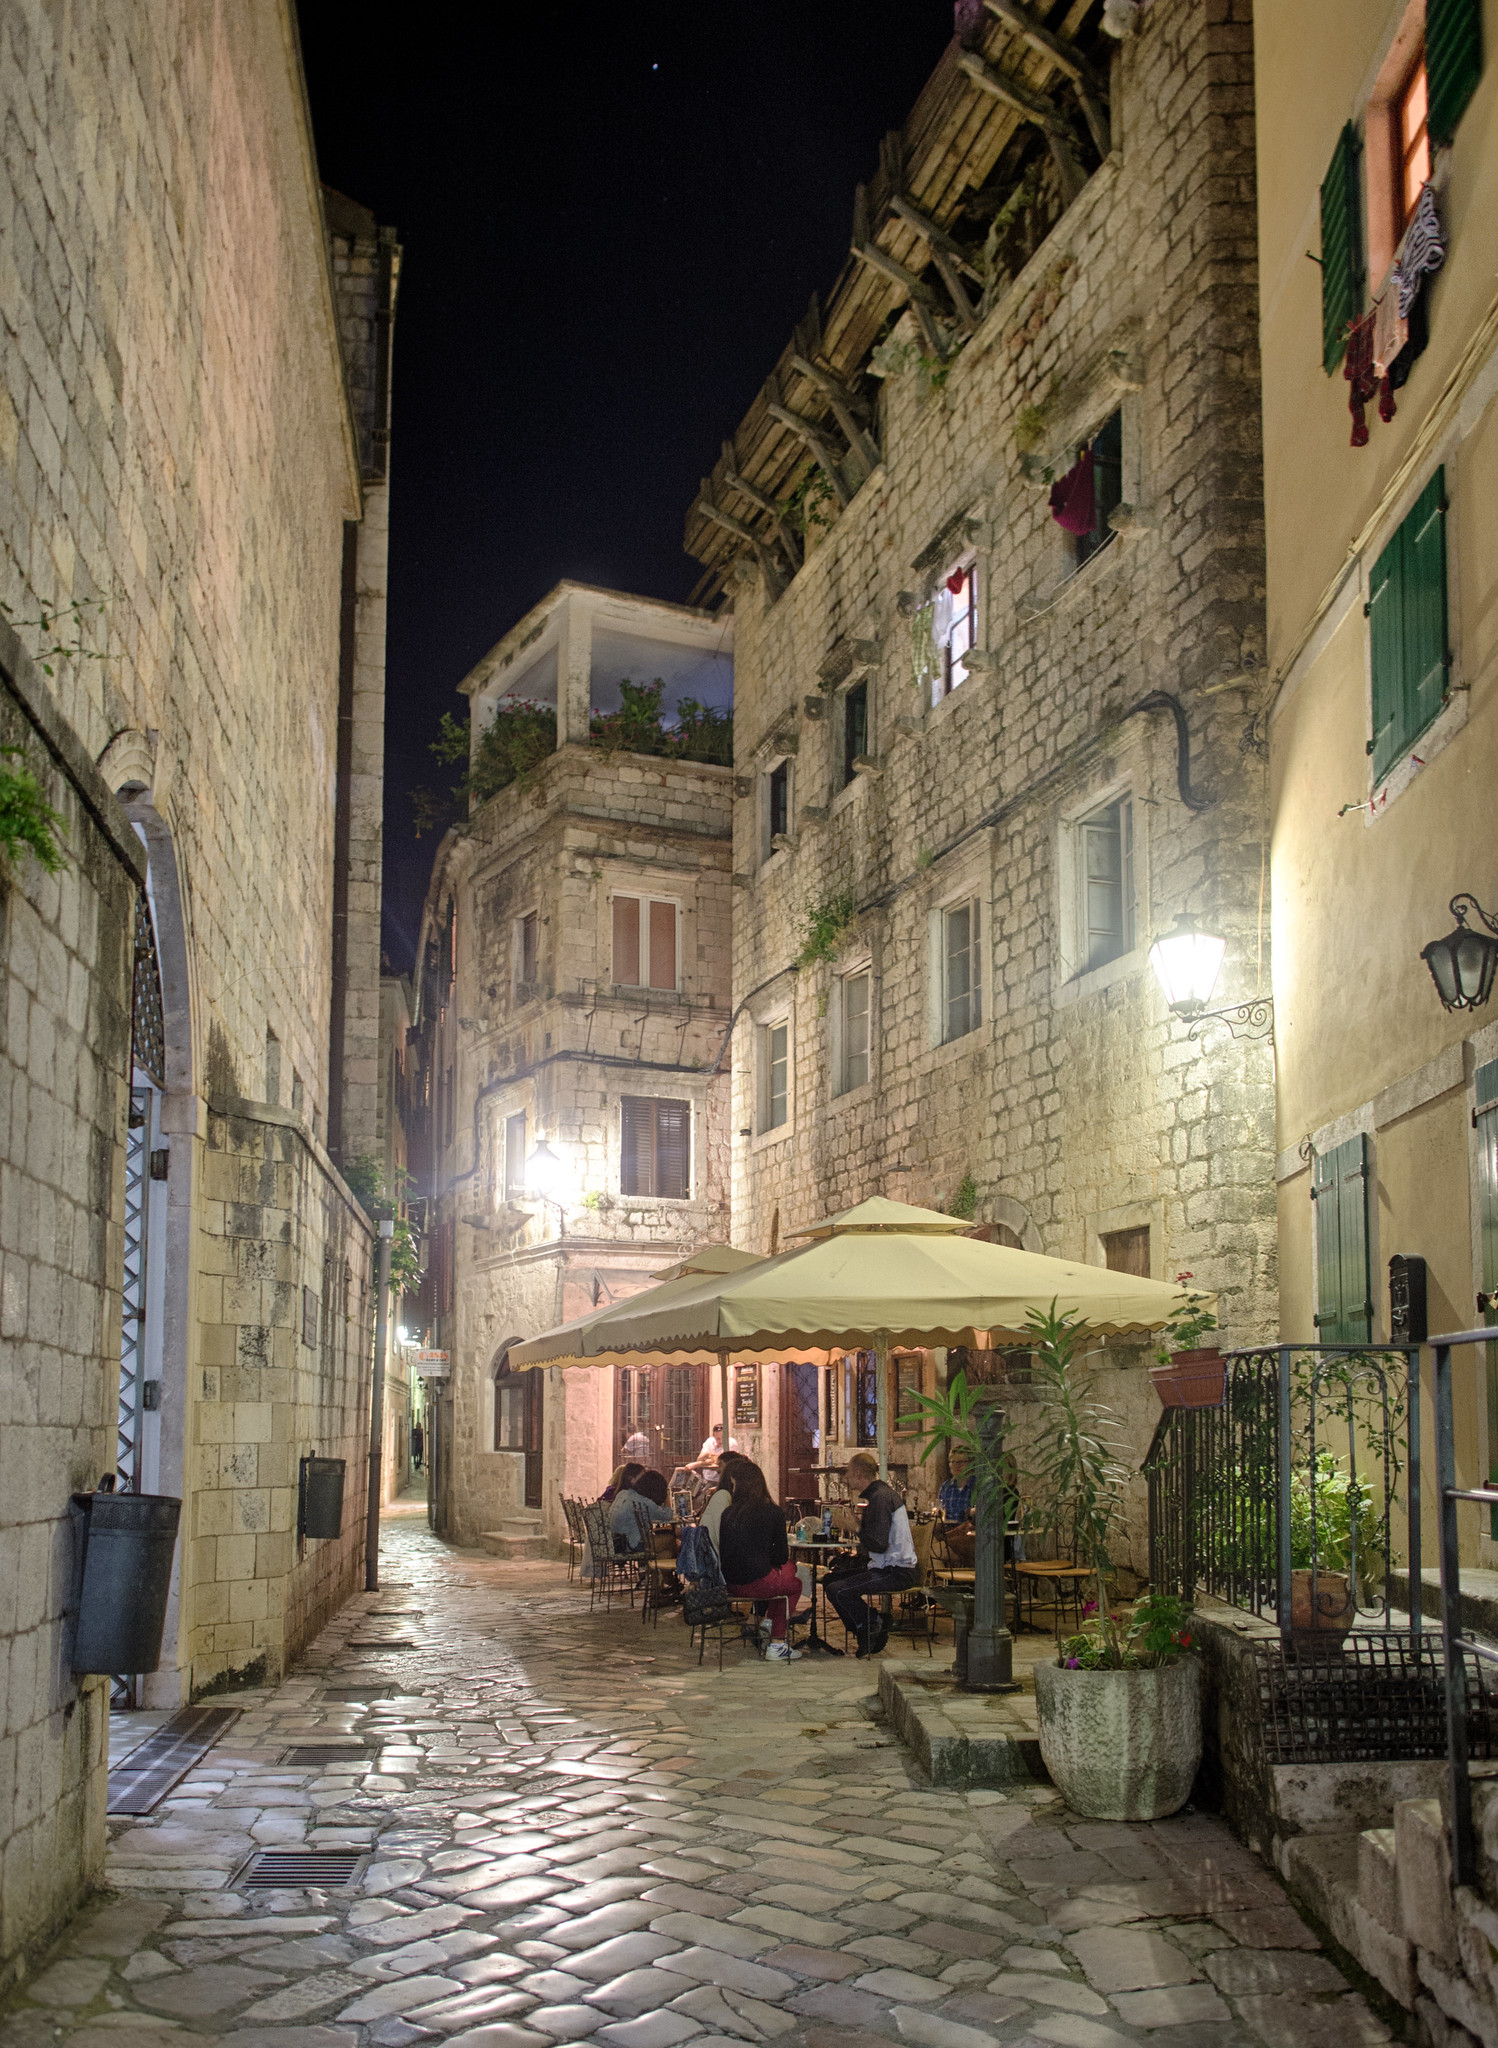 Nighttime in Stari Grad